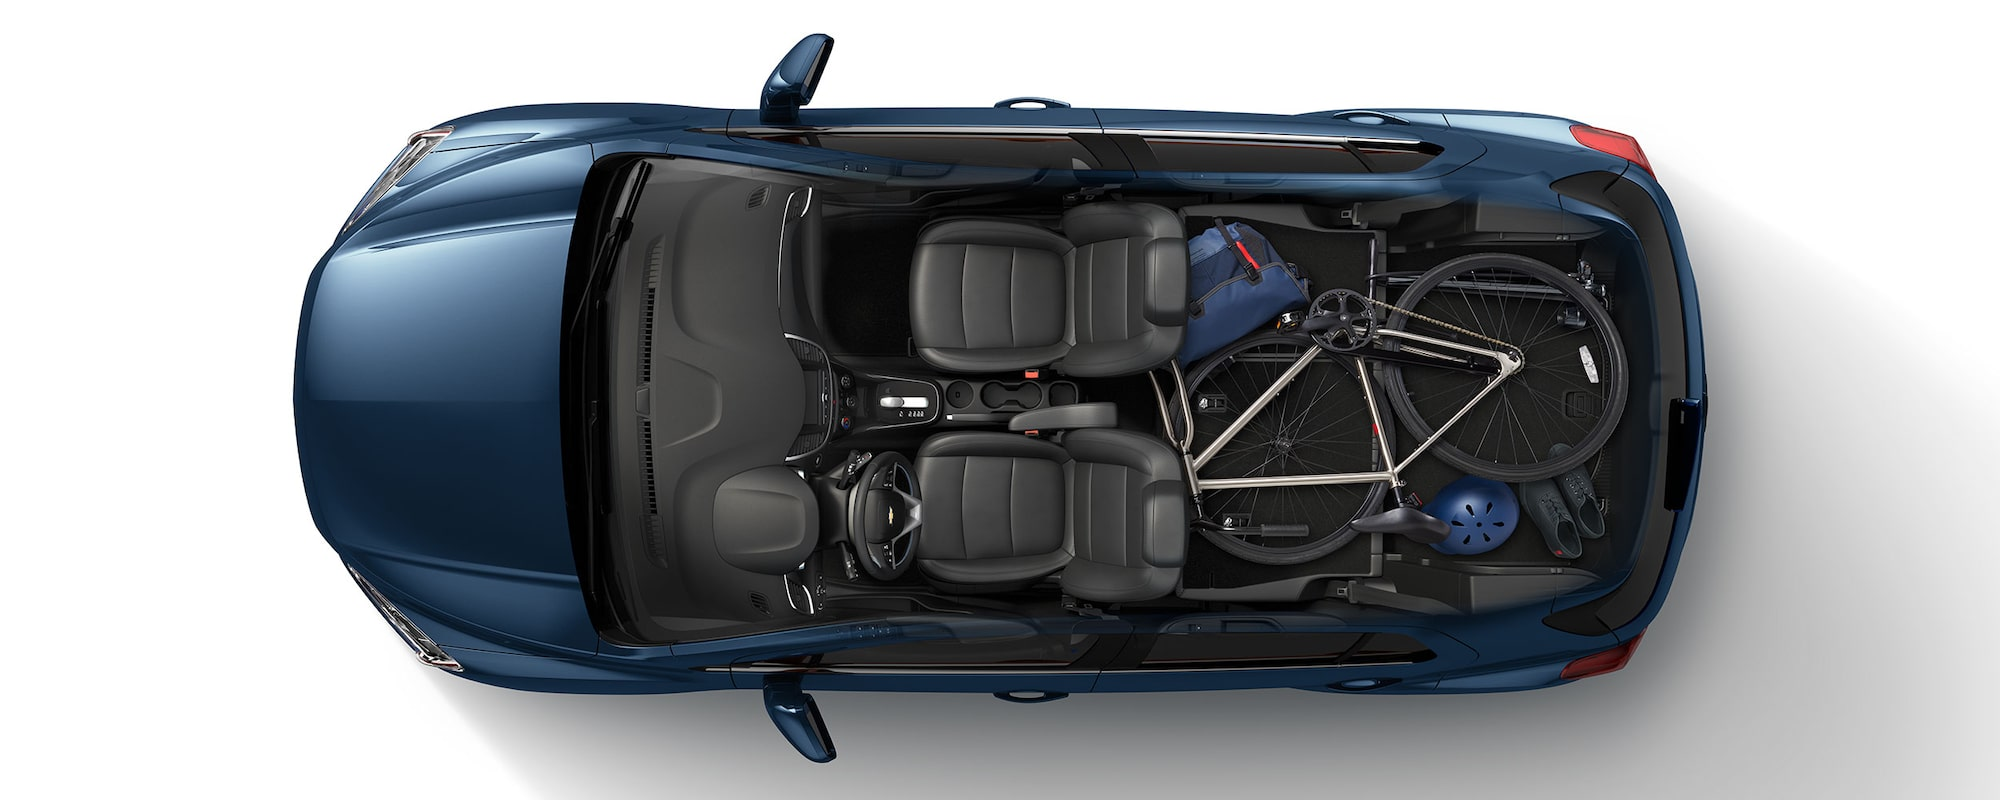 2019 Trax Compact SUV Cargo: Cyclist Pictures